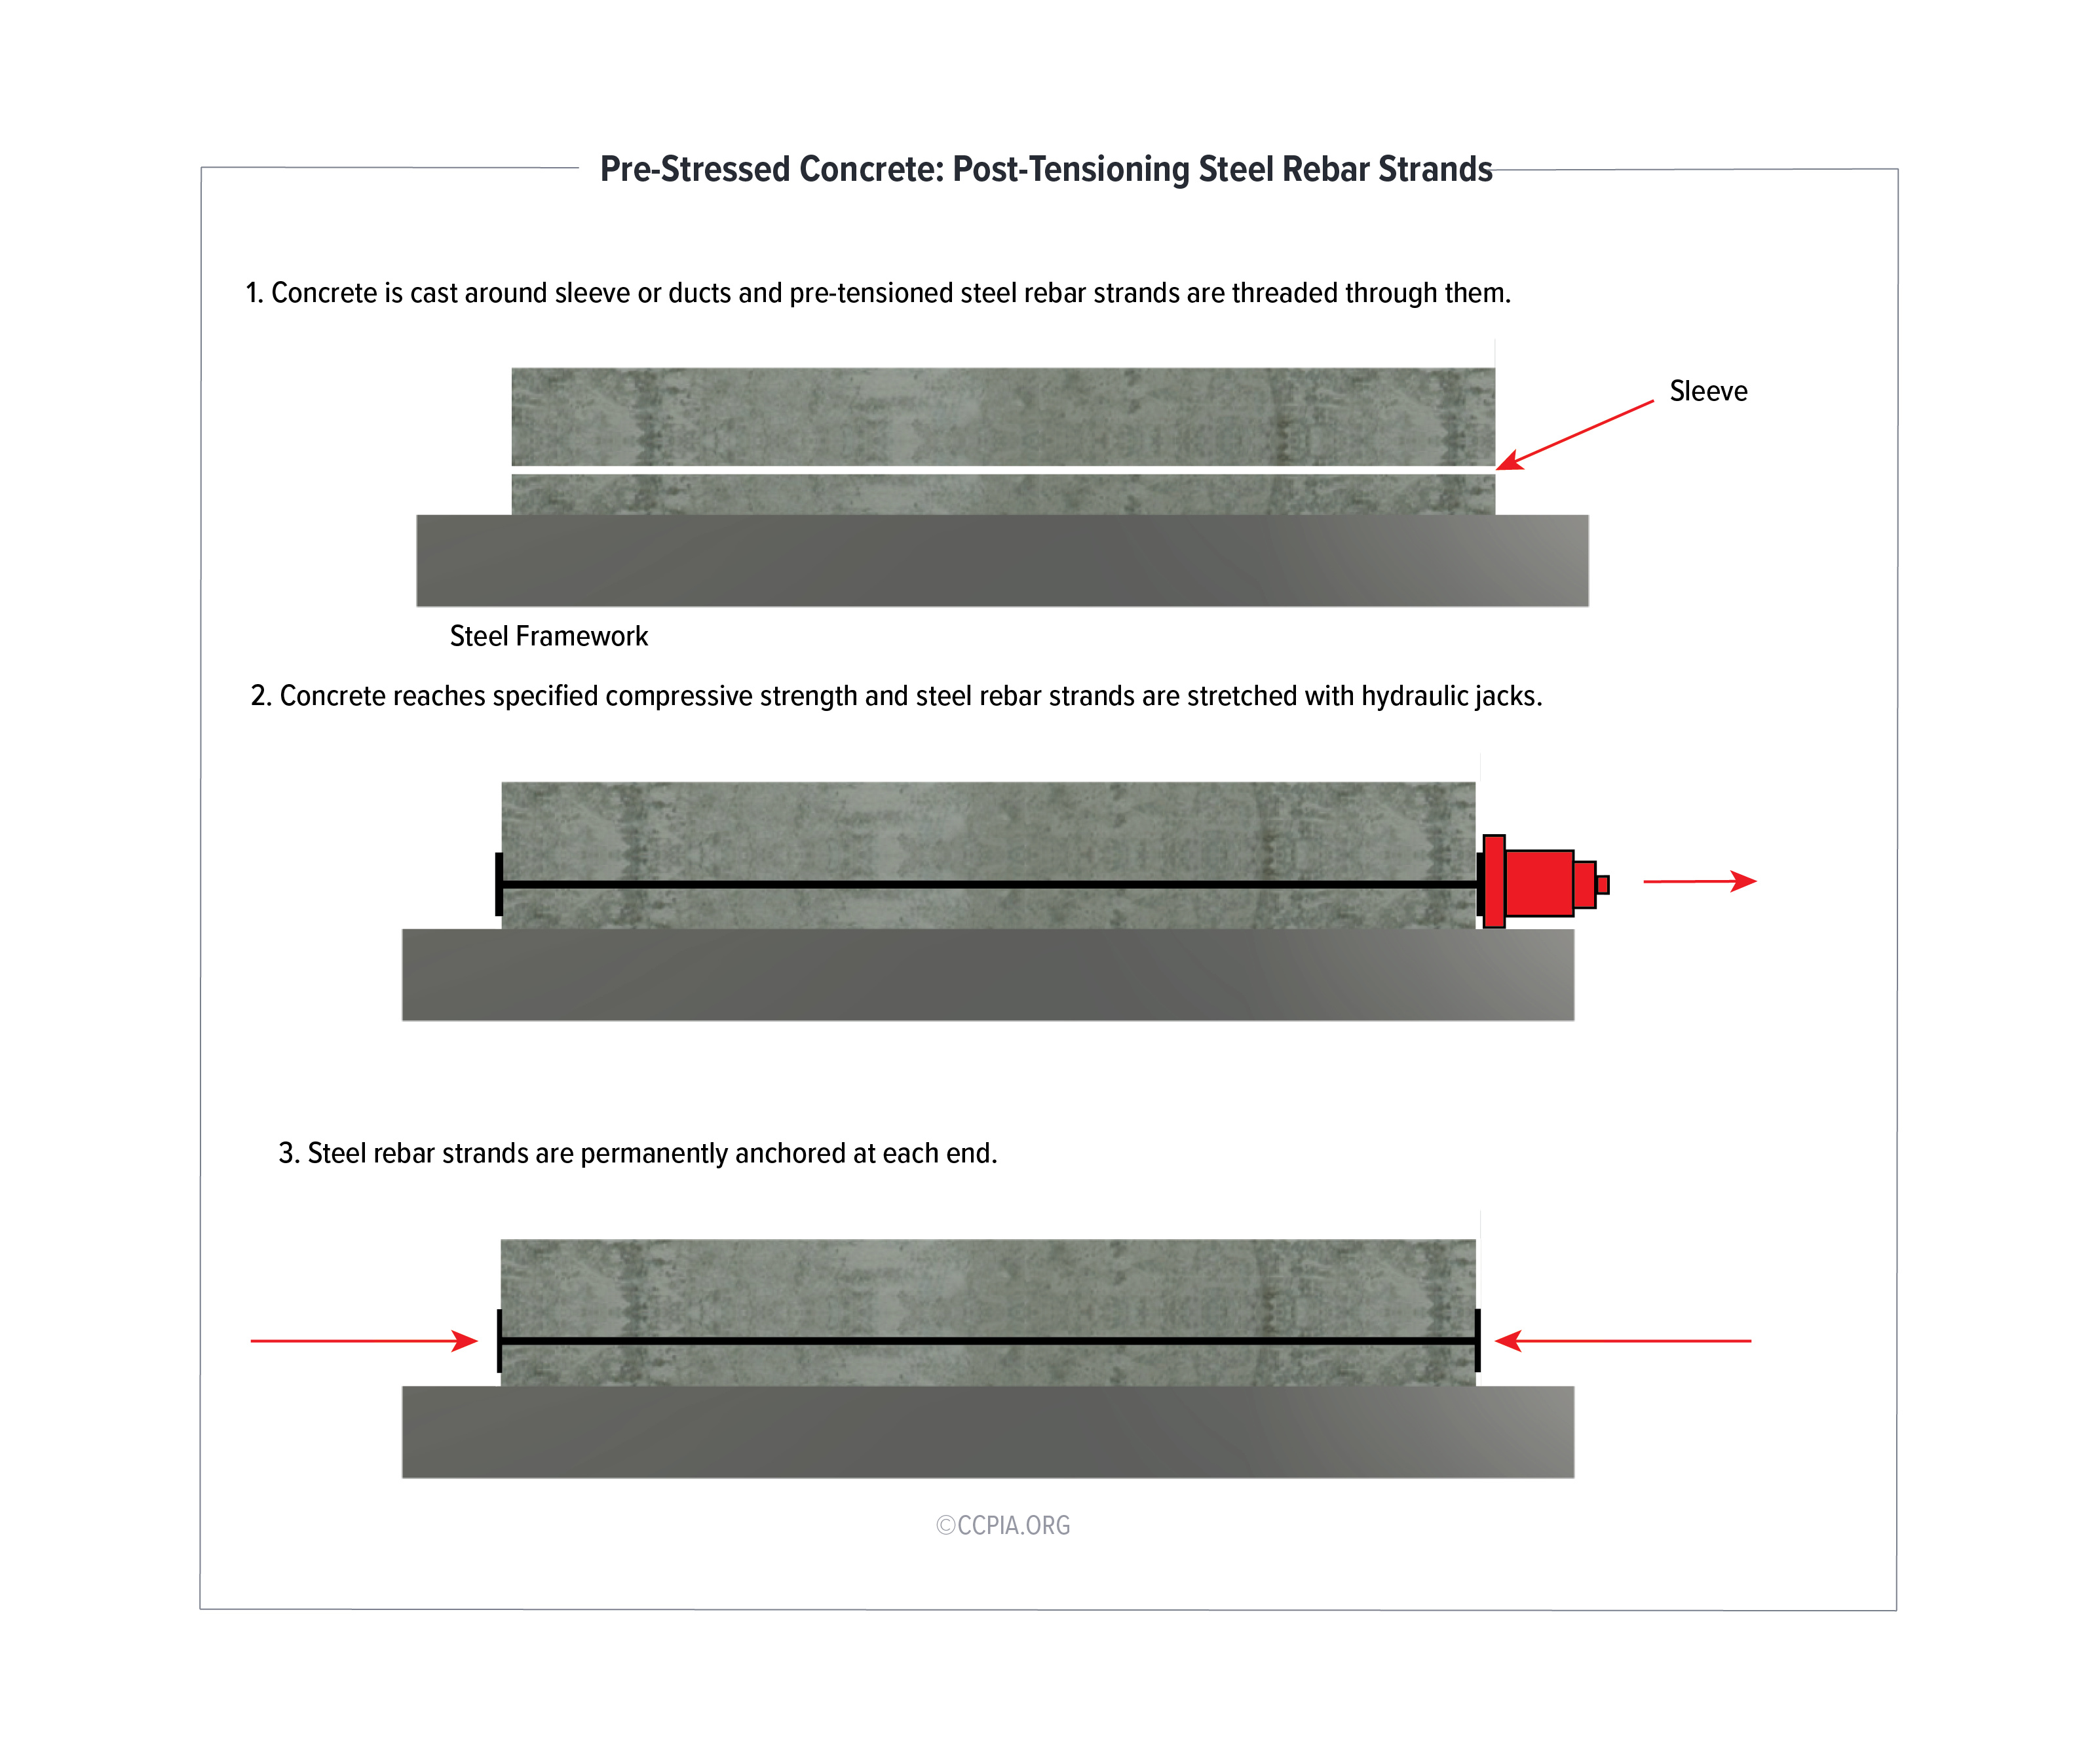 Pre-Stressed Concrete: Post-Tensioning Steel Rebar Strands